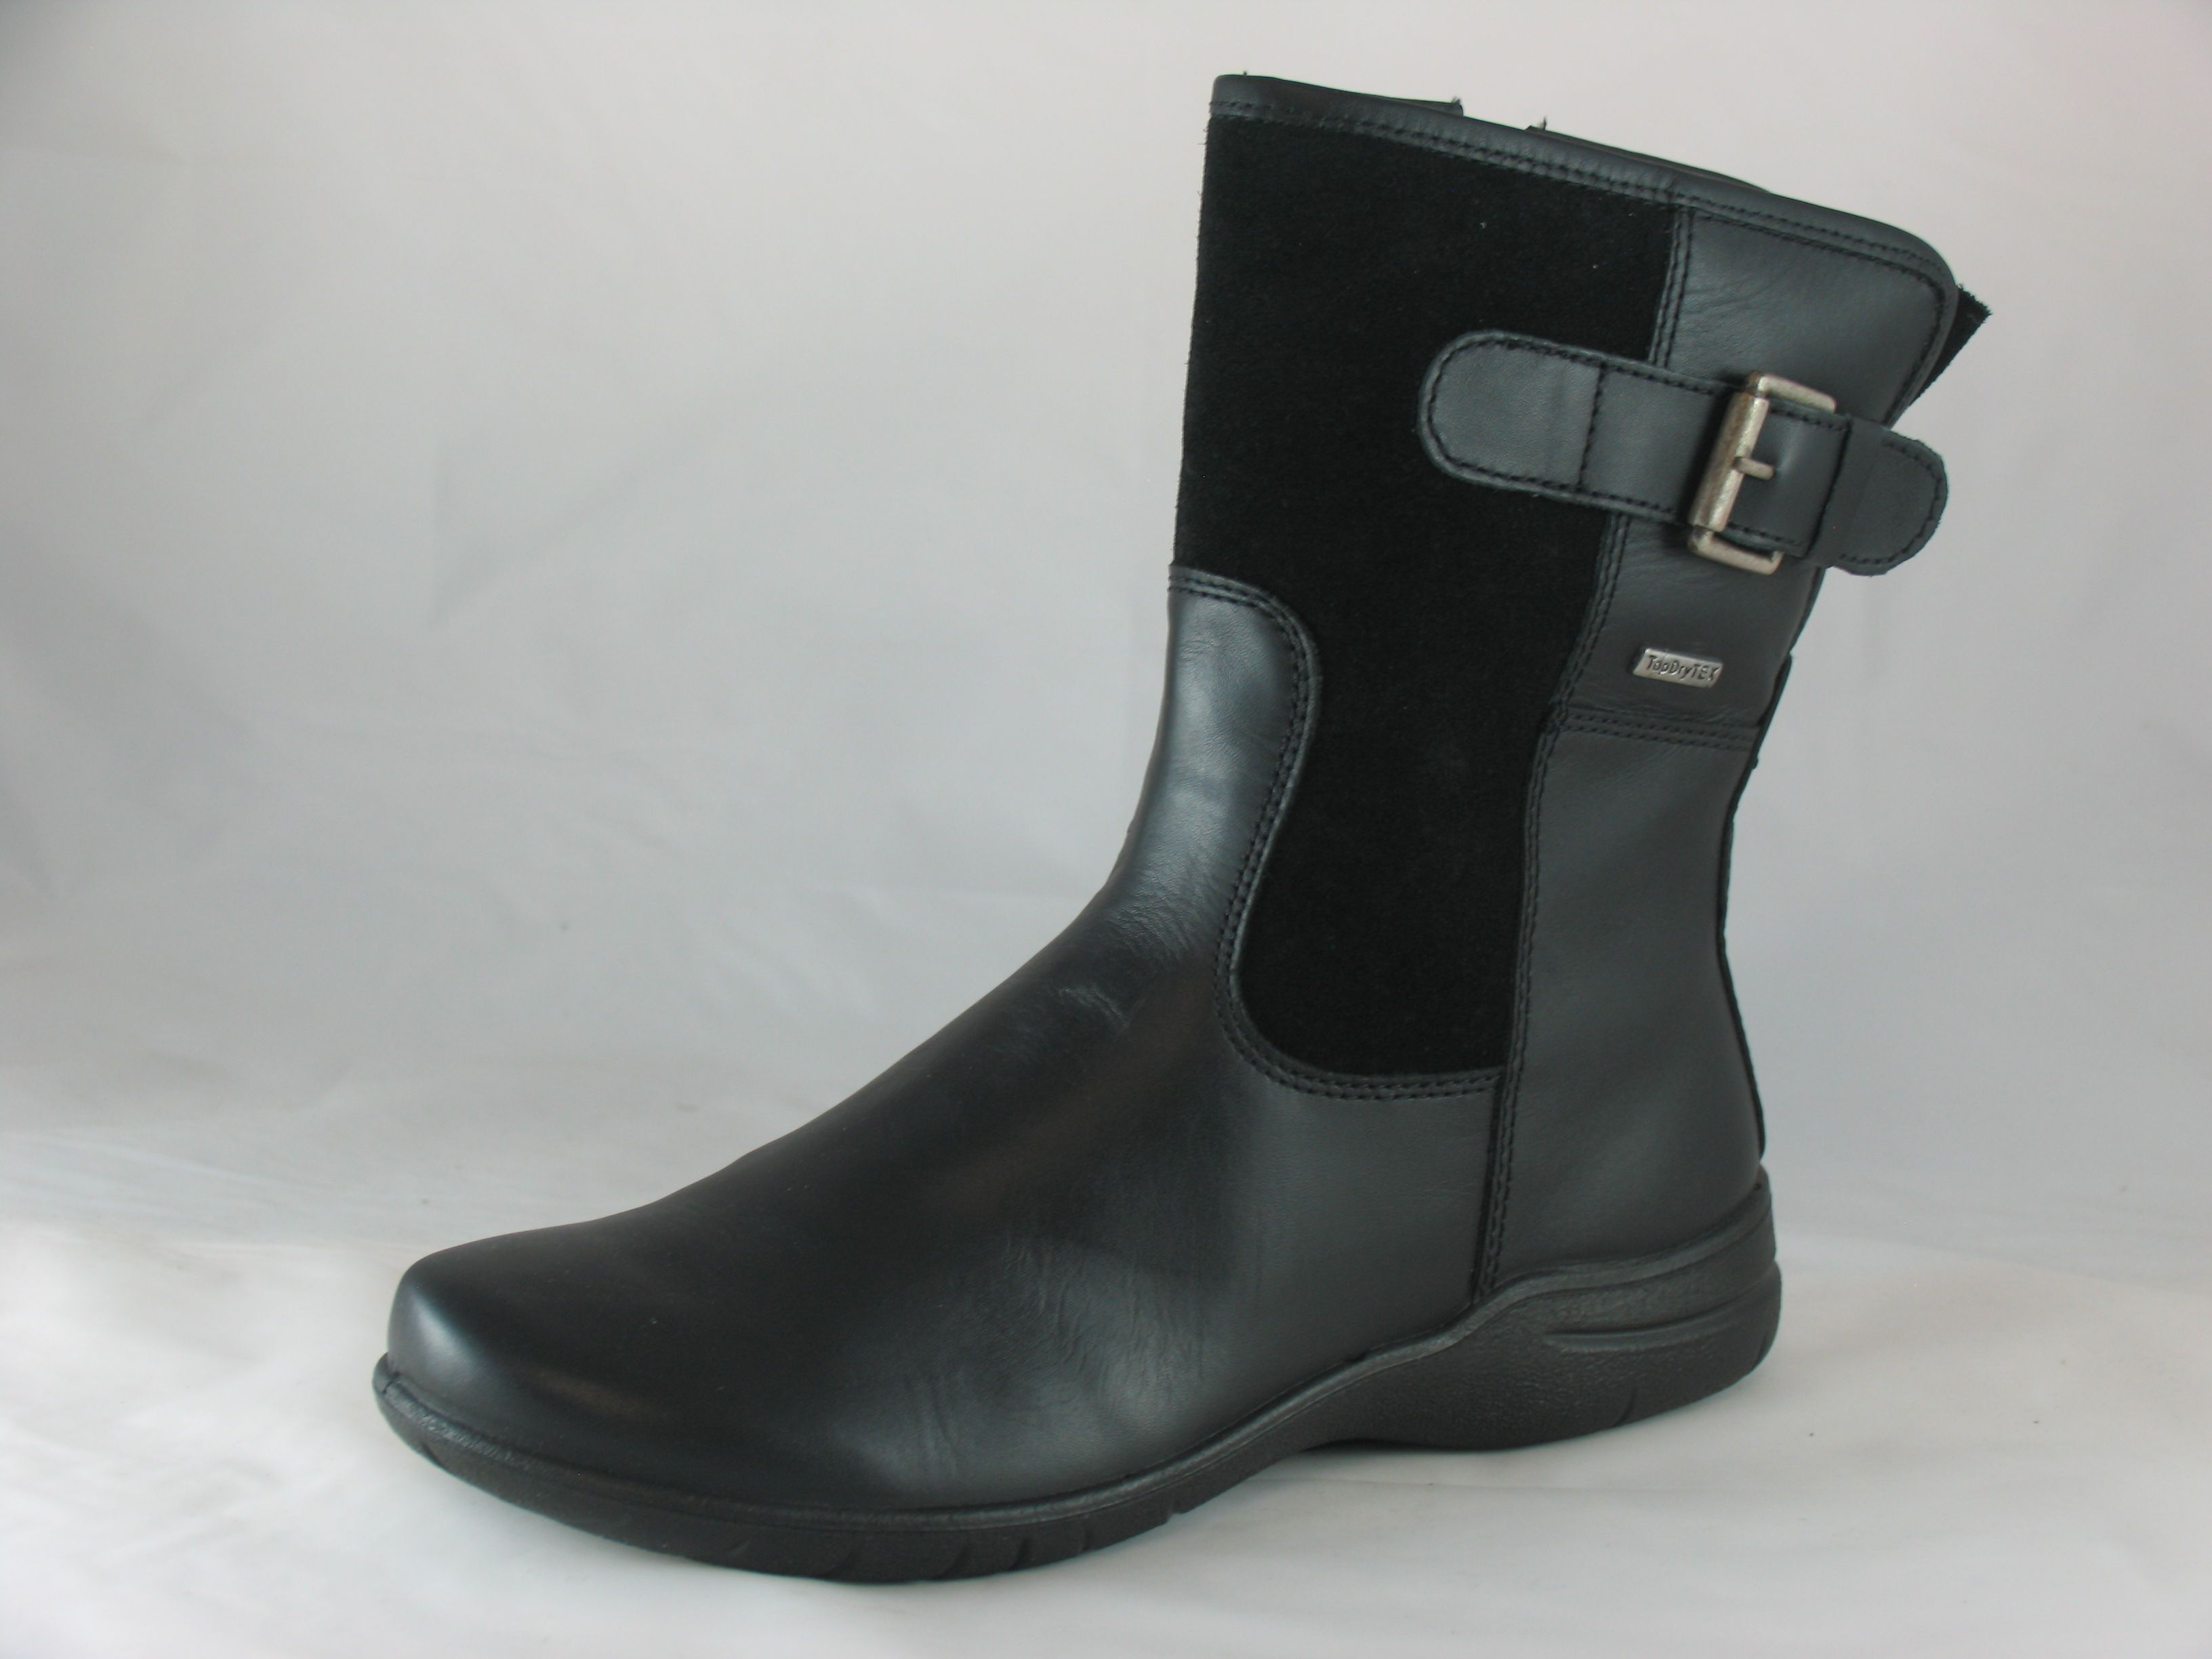 FABIENNE 45 WOMENS MID-CALF ANKLE BOOTS